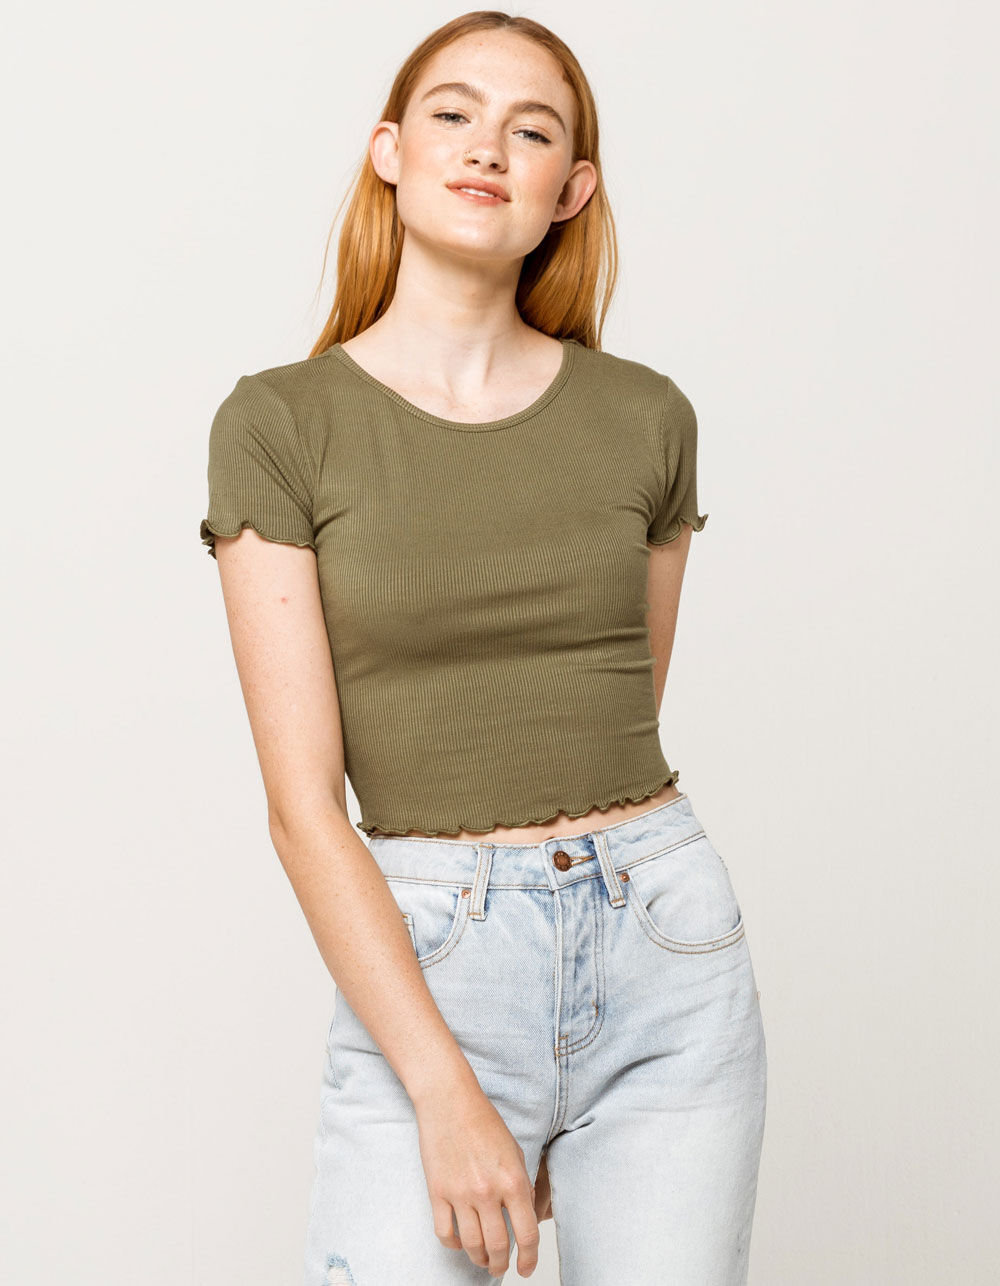 BOZZOLO Ribbed Lettuce Edge Army Crop Tee